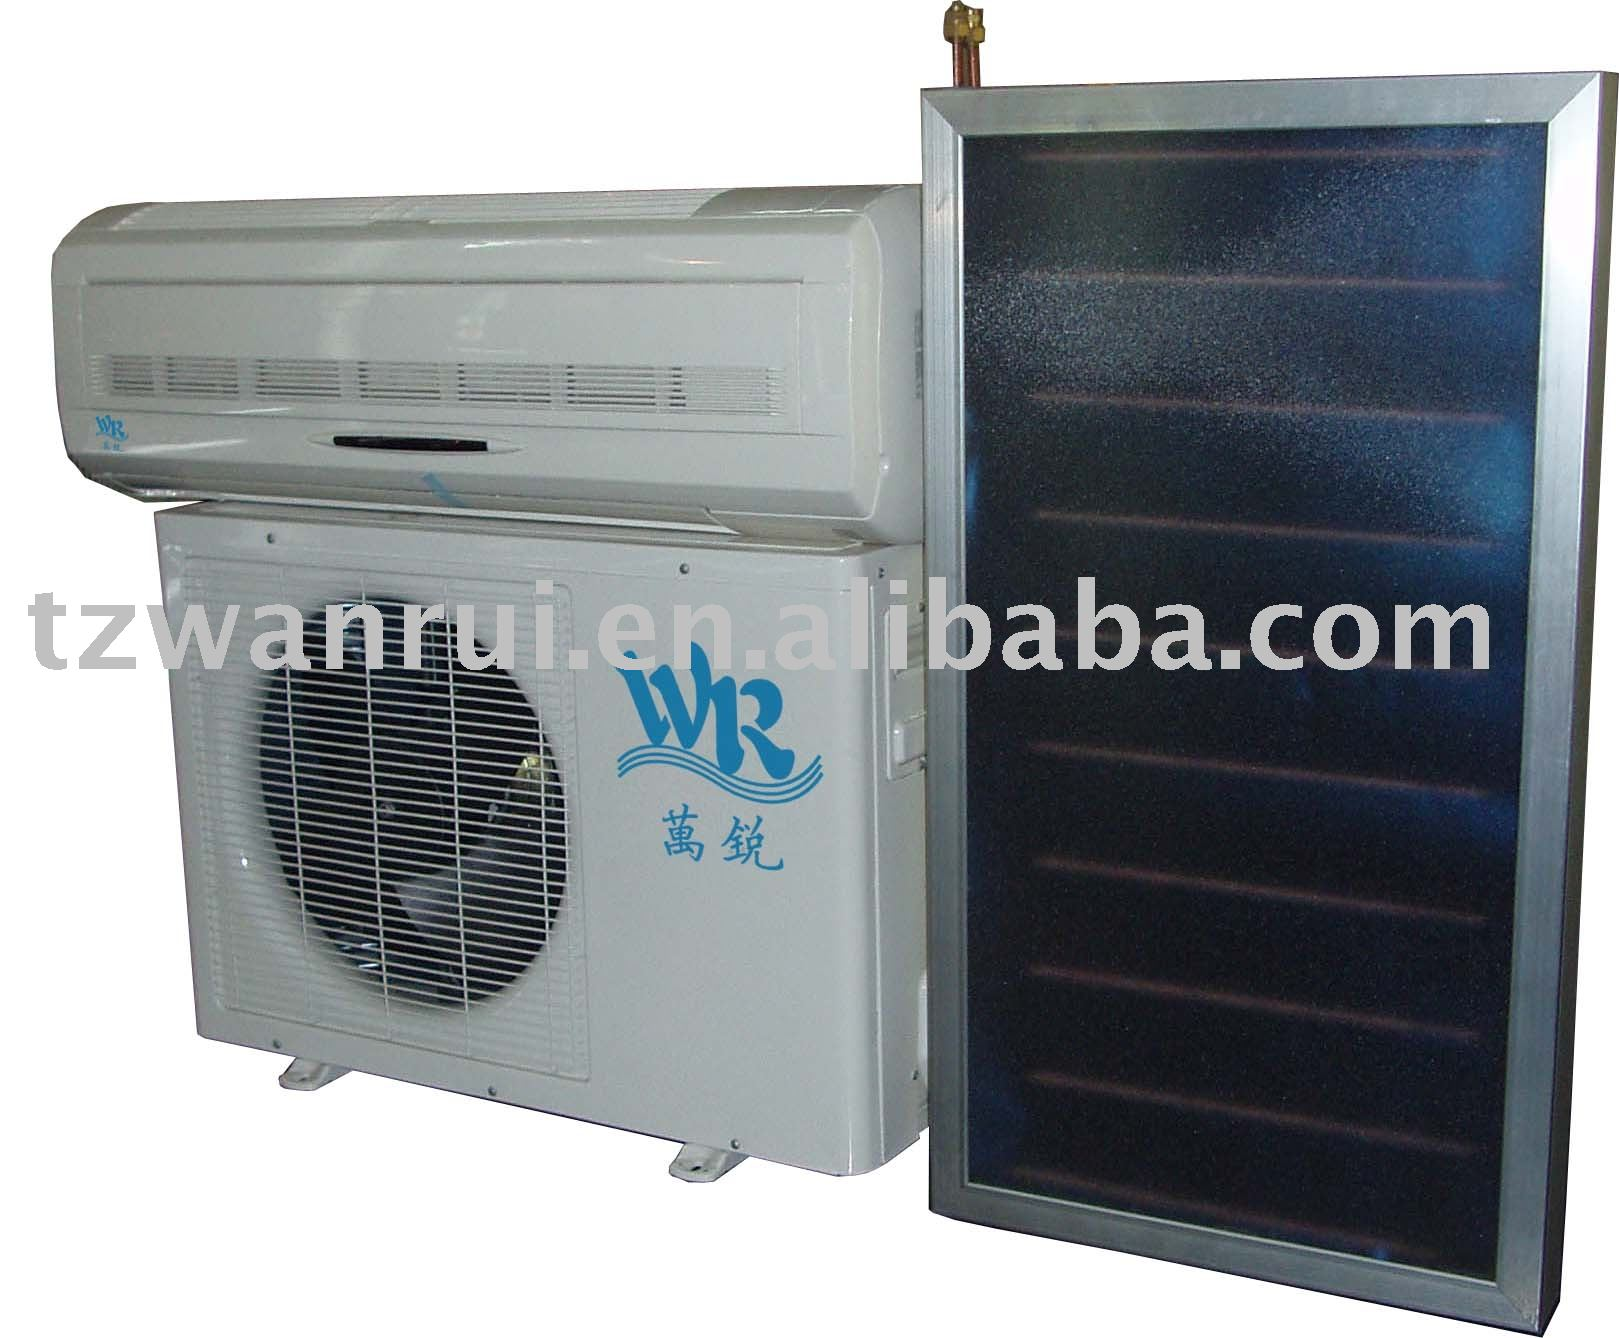 Taizhou City Wanrui Refrigeration Equipment Co. Ltd. on Alibaba.com #384961